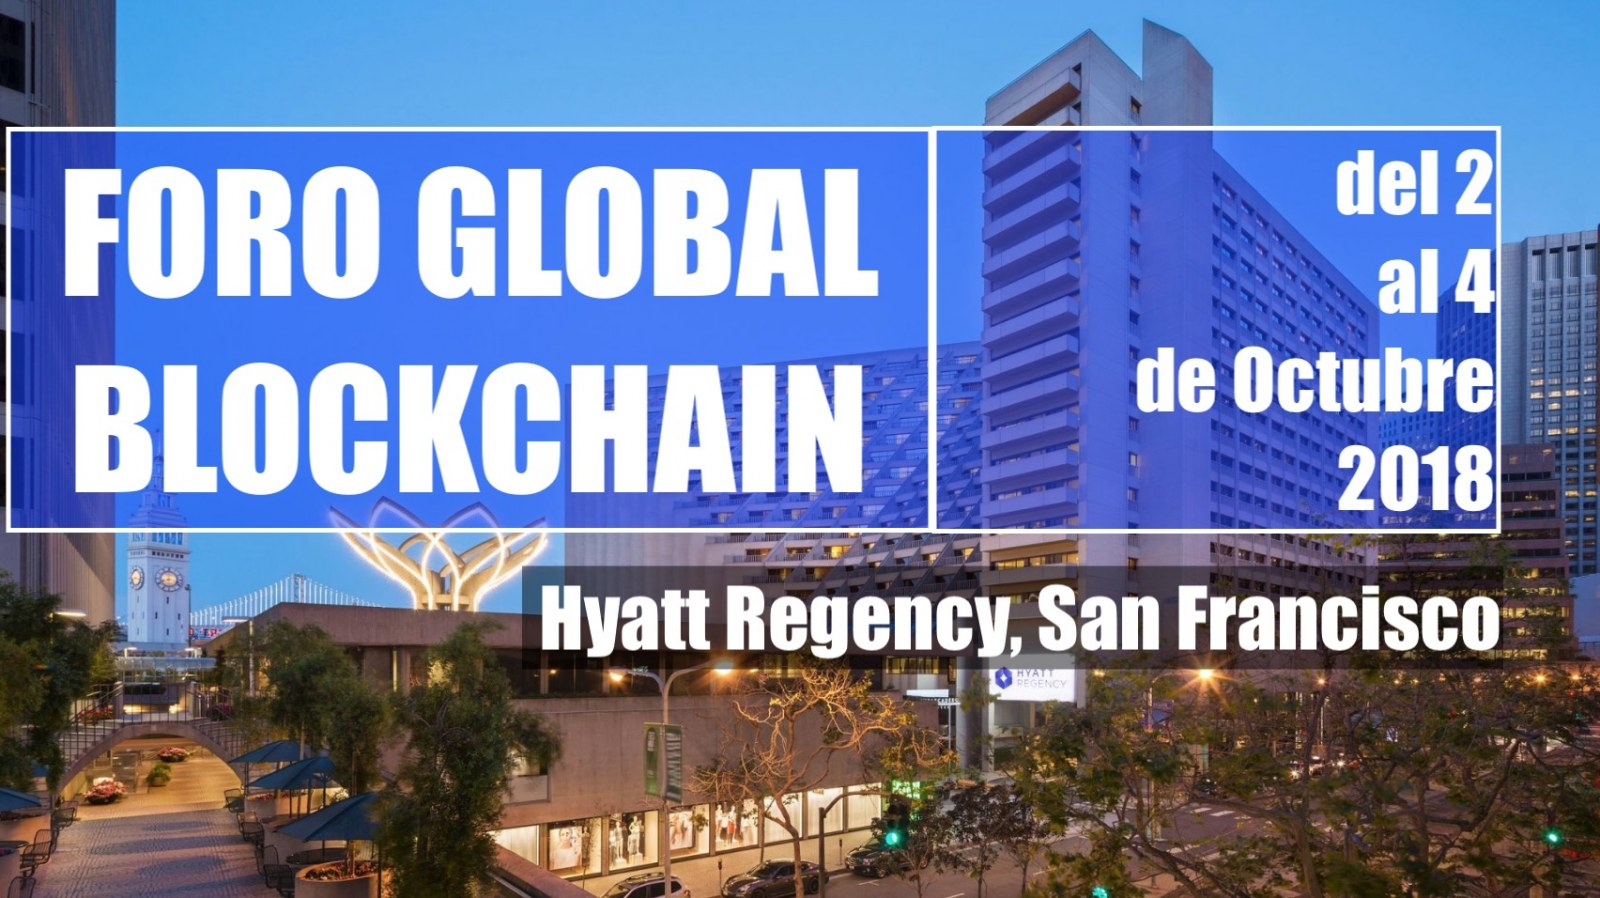 foro global blockchain